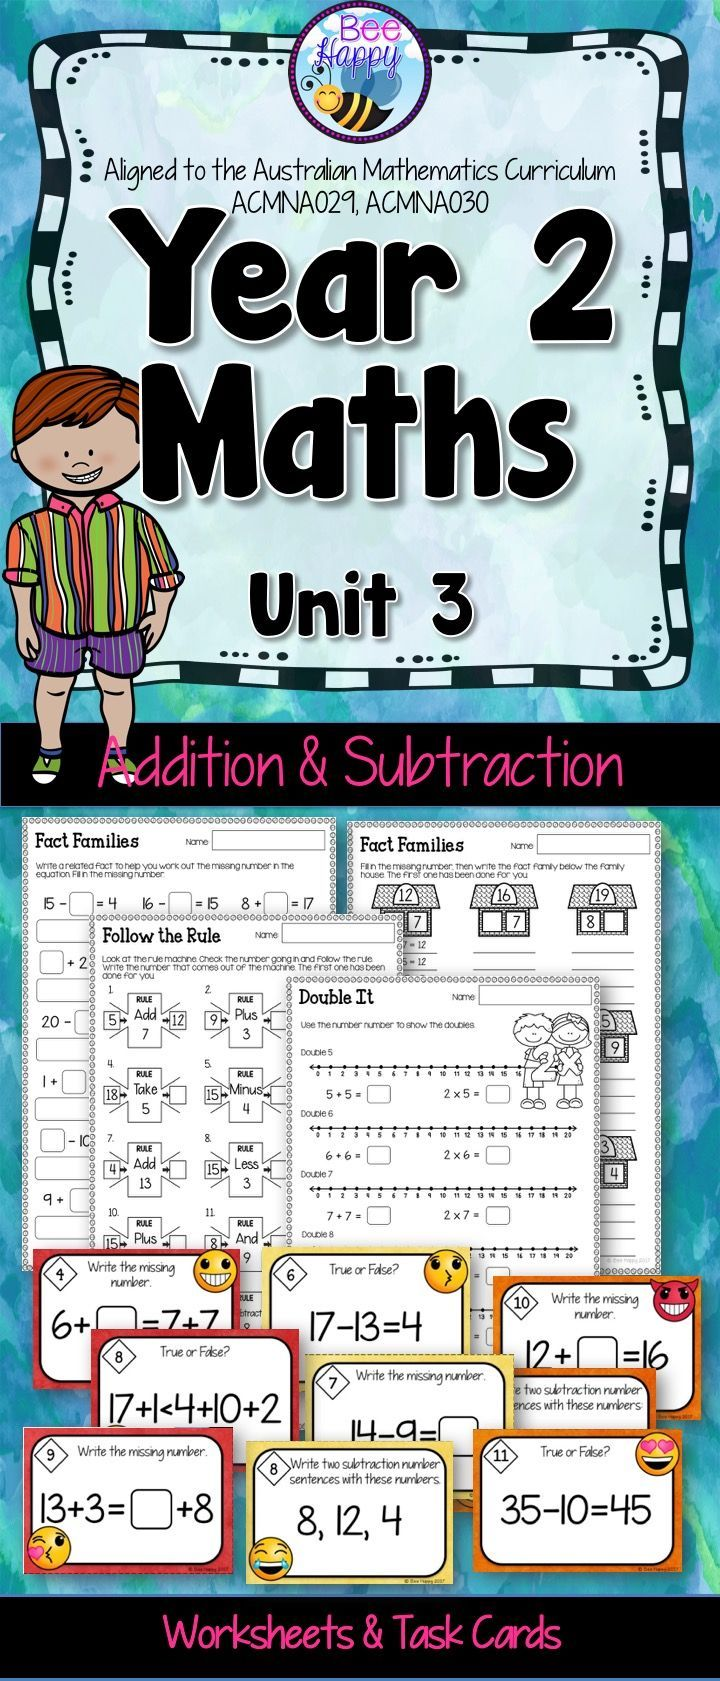 Year 2 Maths Unit 1 Number Sequences Worksheets and Task Cards ...